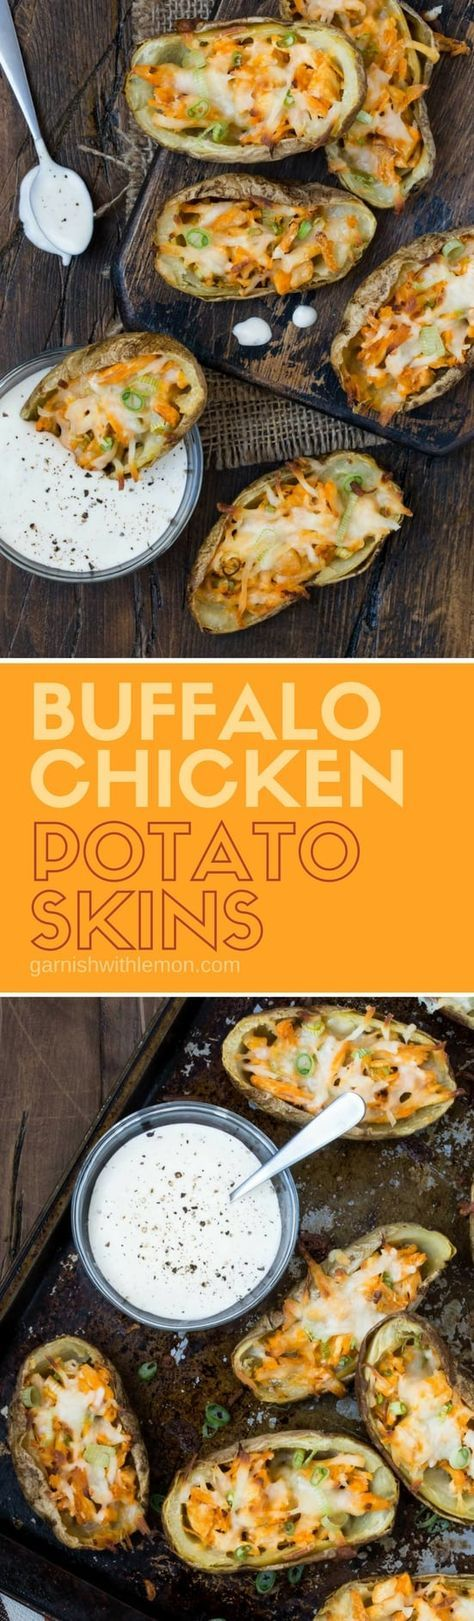 Who needs to go out when you can make restaurant quality Buffalo Chicken Potato Skins at home? And its just an added bonus that they are baked not fried so you save on calories too! #buffalochicken #potatoskins #potatoes #appetizers #snacks #partyfood